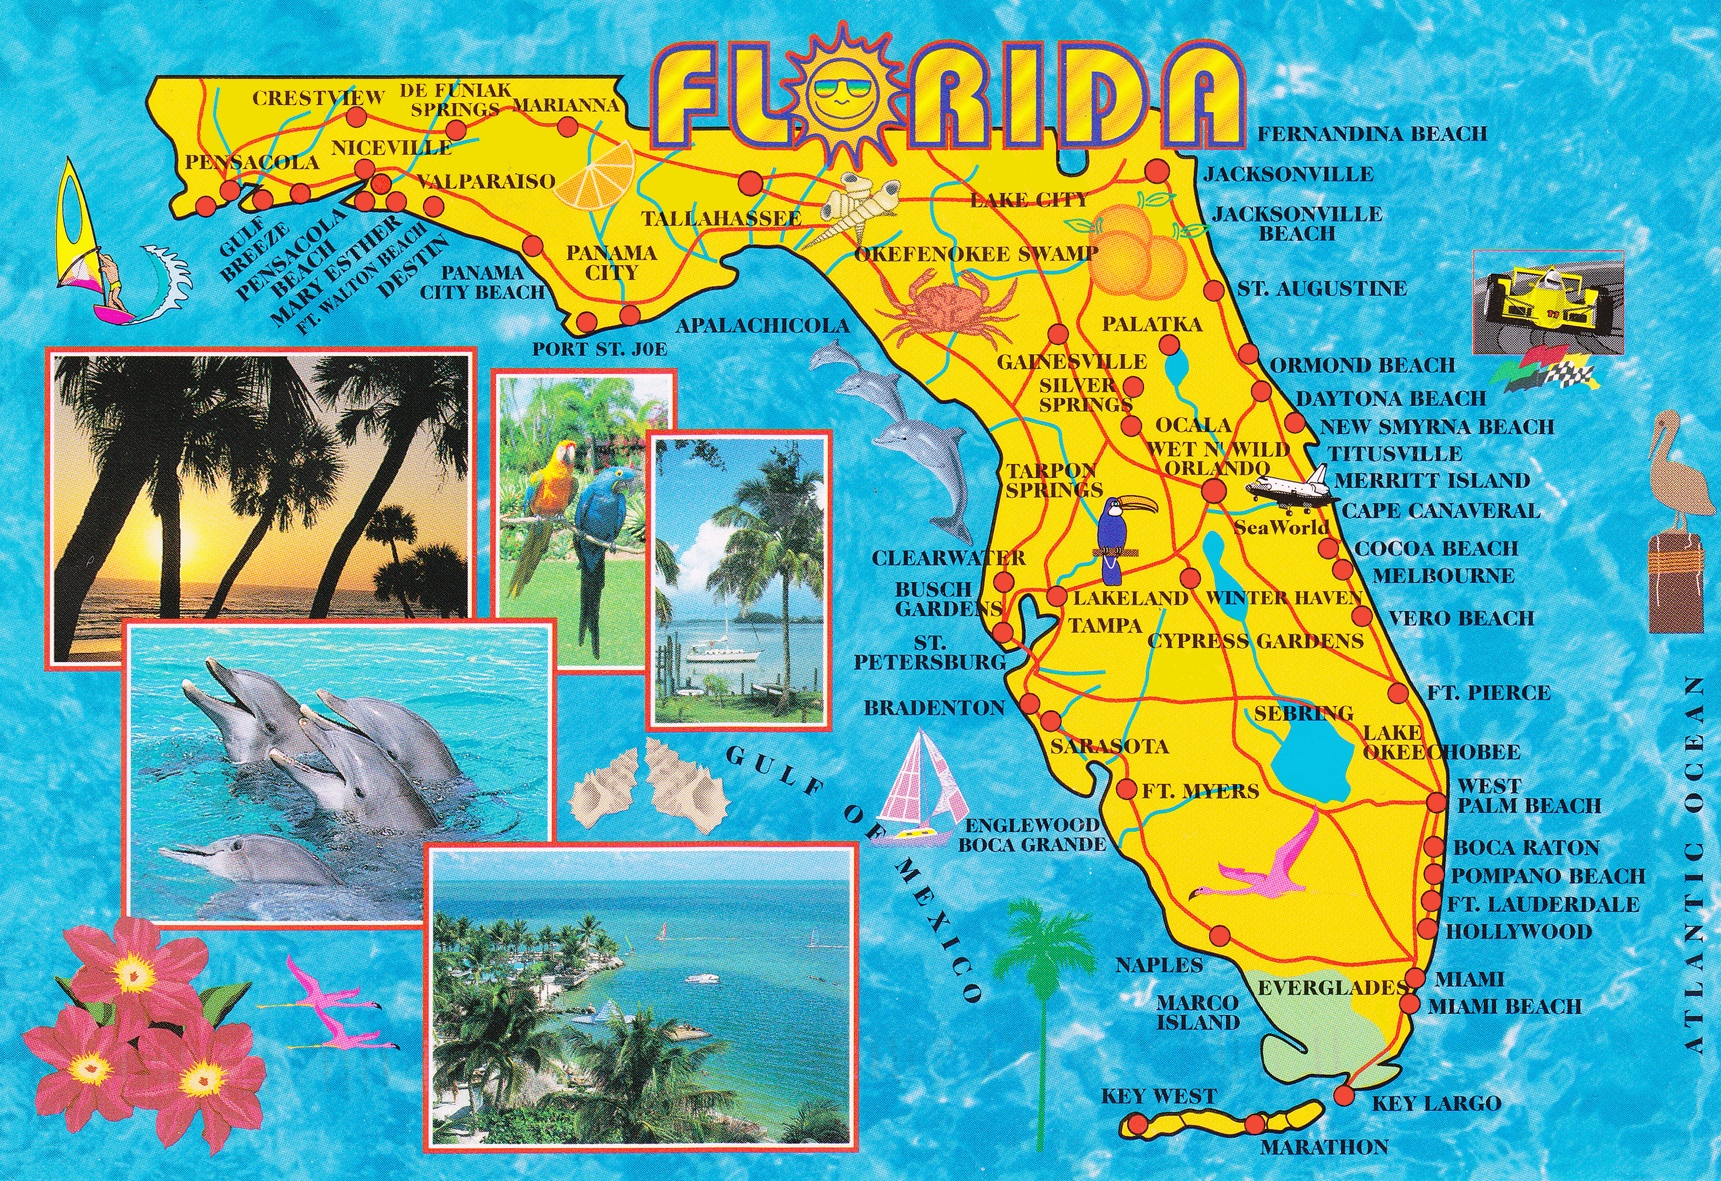 Flordia State Map.Florida State Maps Usa Maps Of Florida Fl